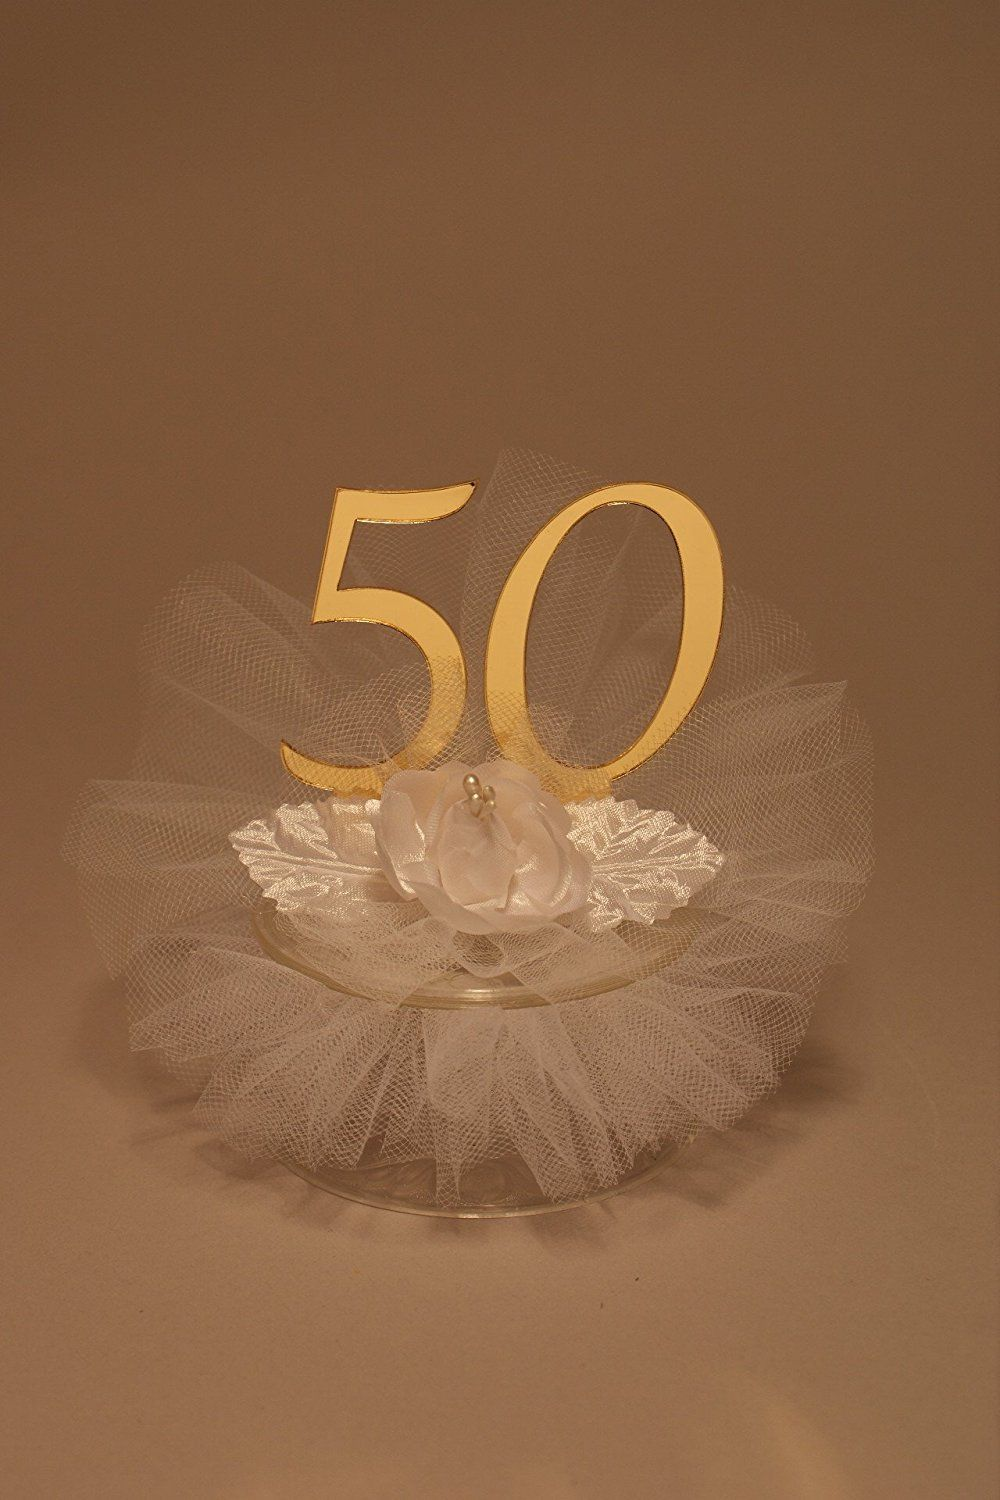 50th Wedding Anniversary Cake Topper > Review more details